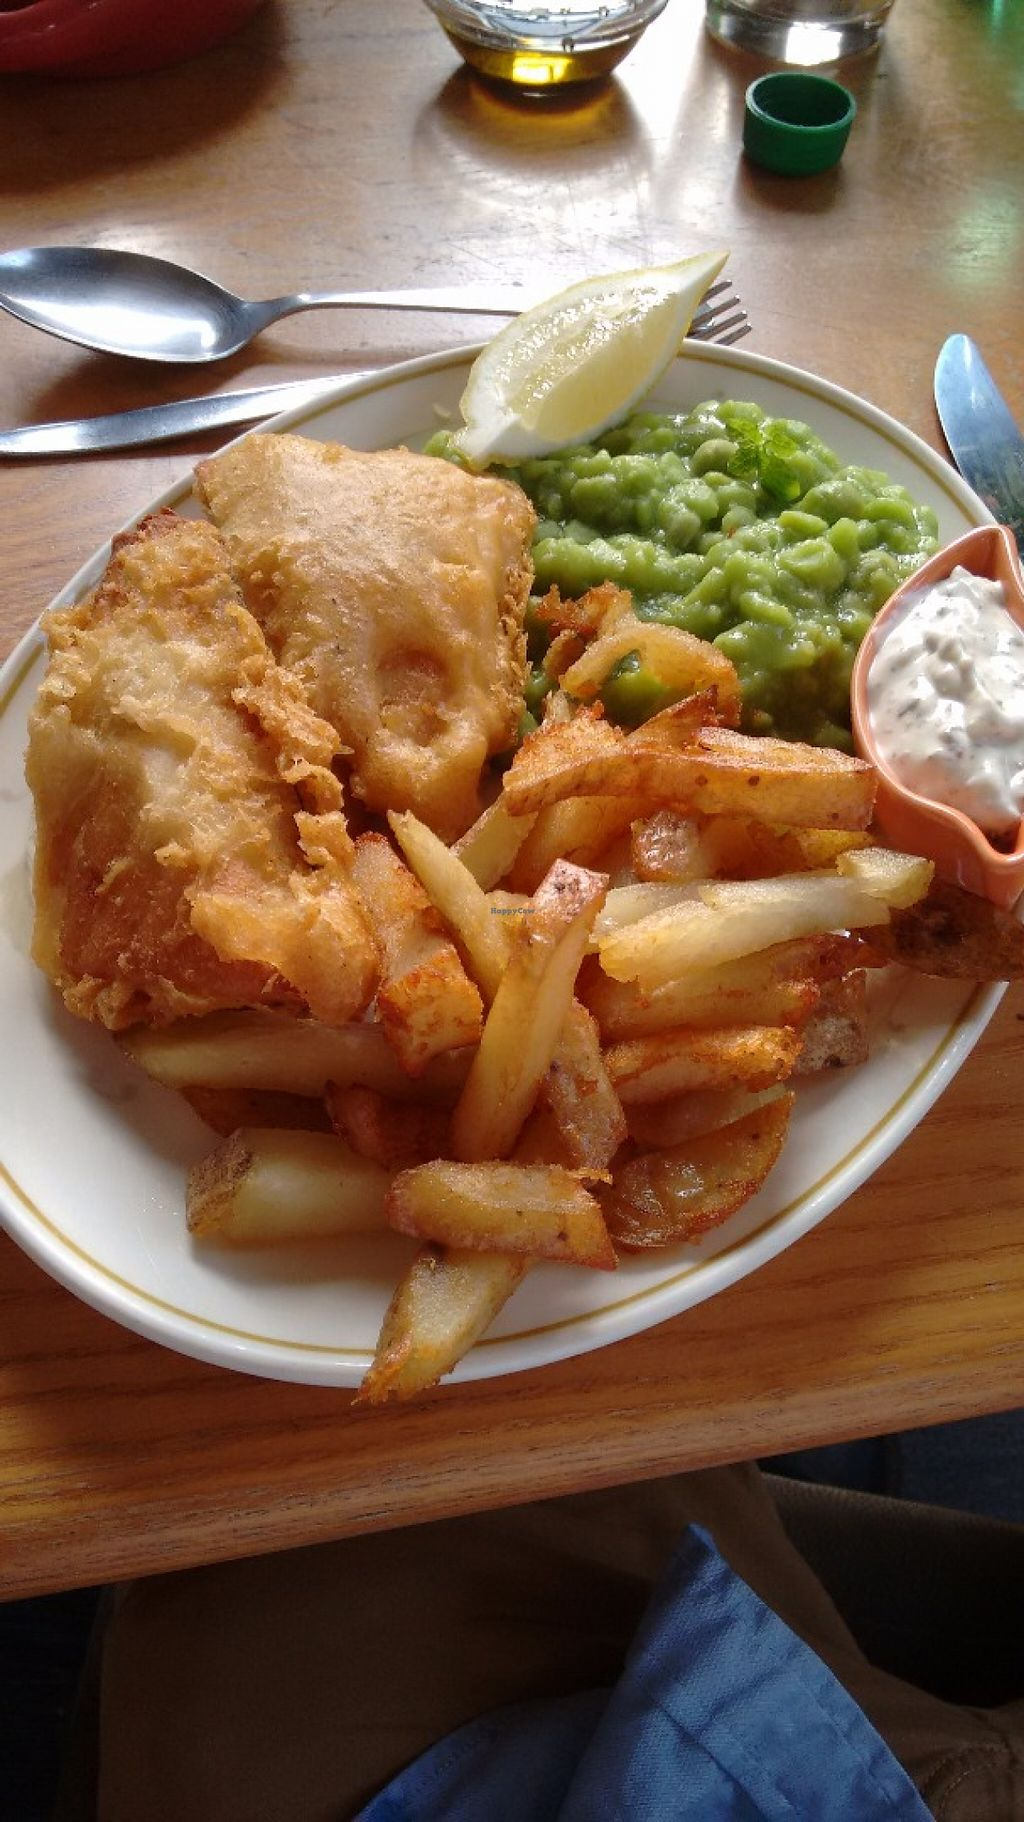 """Photo of CLOSED: Shallot  by <a href=""""/members/profile/craigmc"""">craigmc</a> <br/>Fish and chips <br/> June 8, 2016  - <a href='/contact/abuse/image/72701/152960'>Report</a>"""